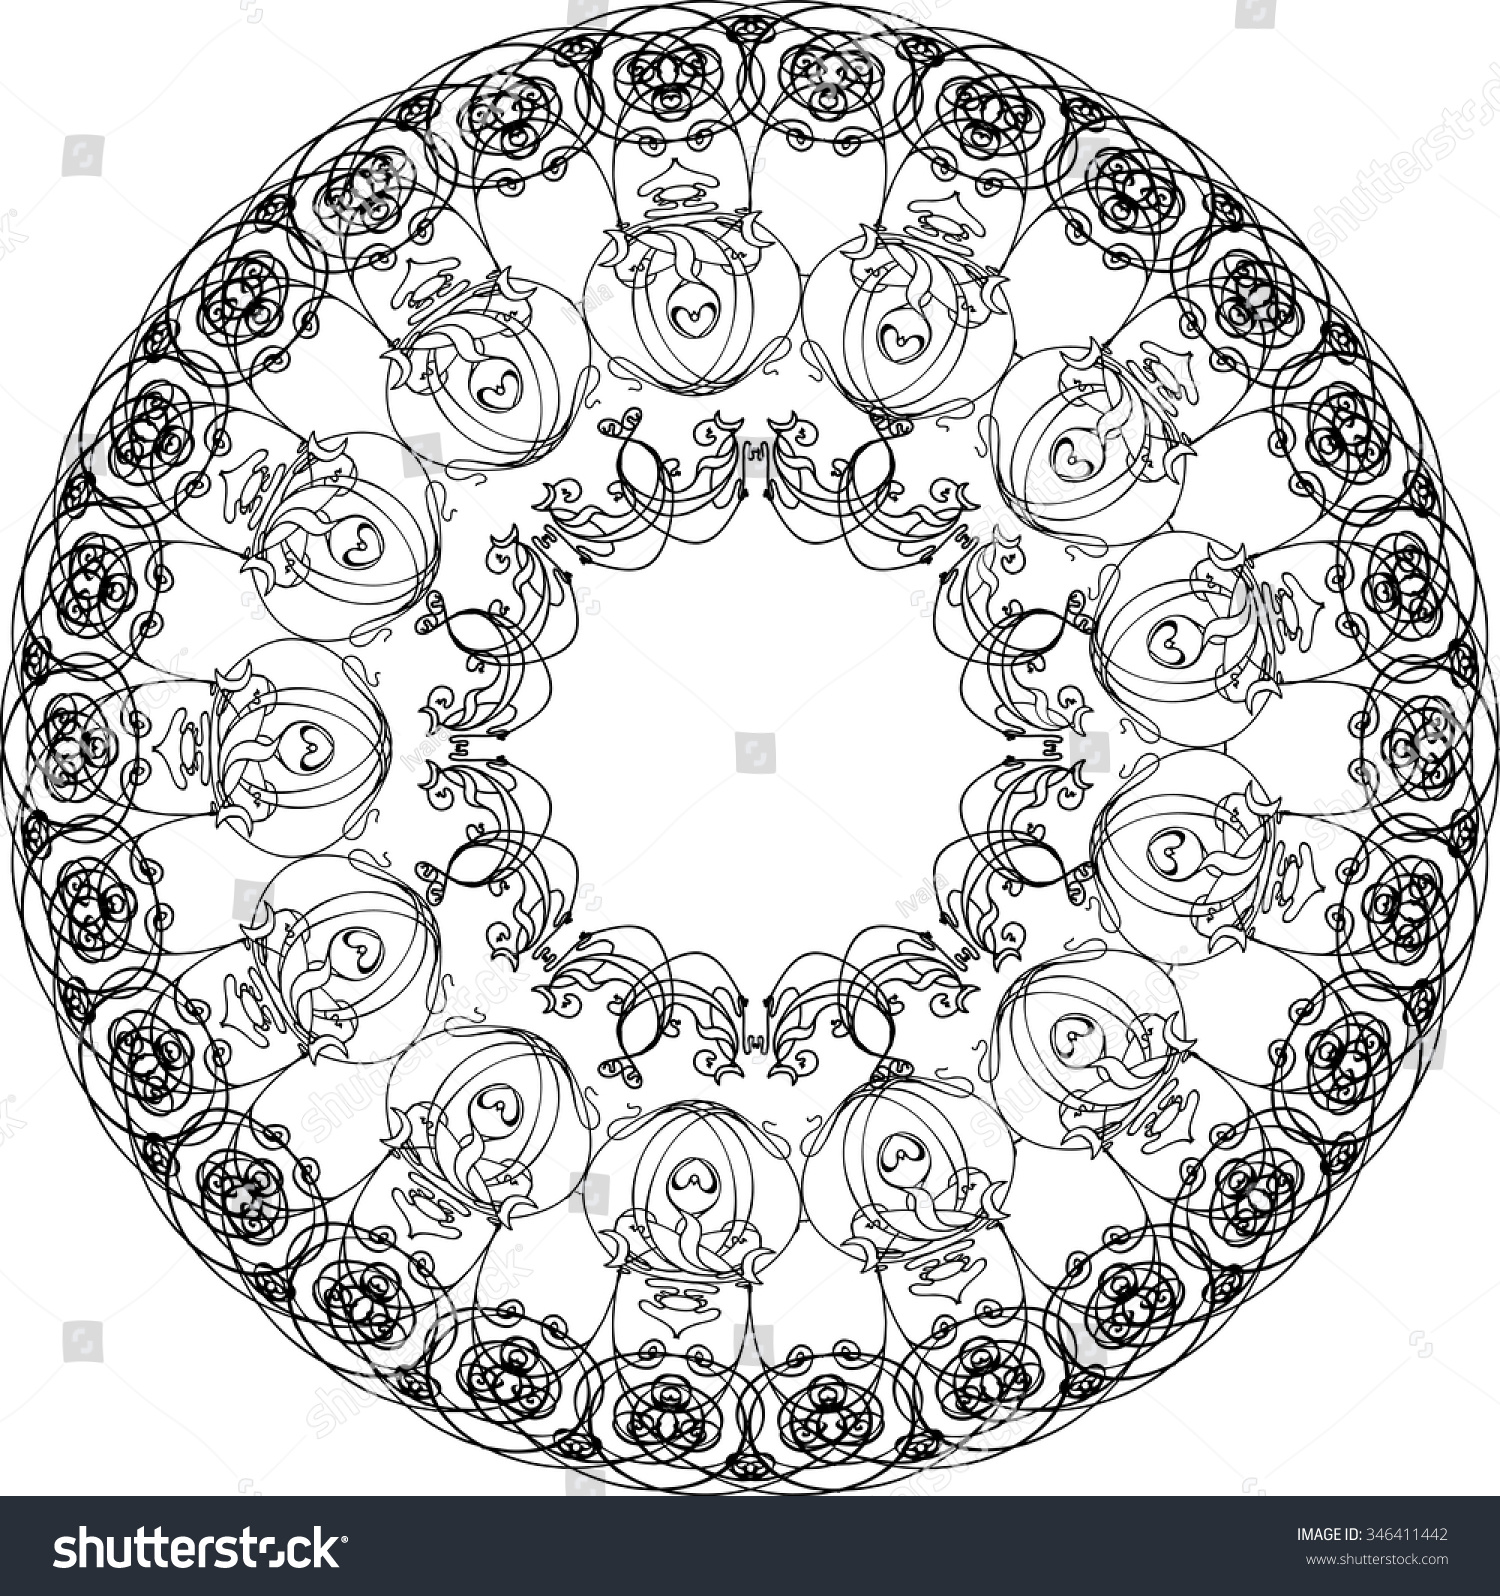 Color art kaleidoscope - Art Nouveau Kaleidoscope Mandala With Perfume Bottle Doodle Design For Color Book Vector Design